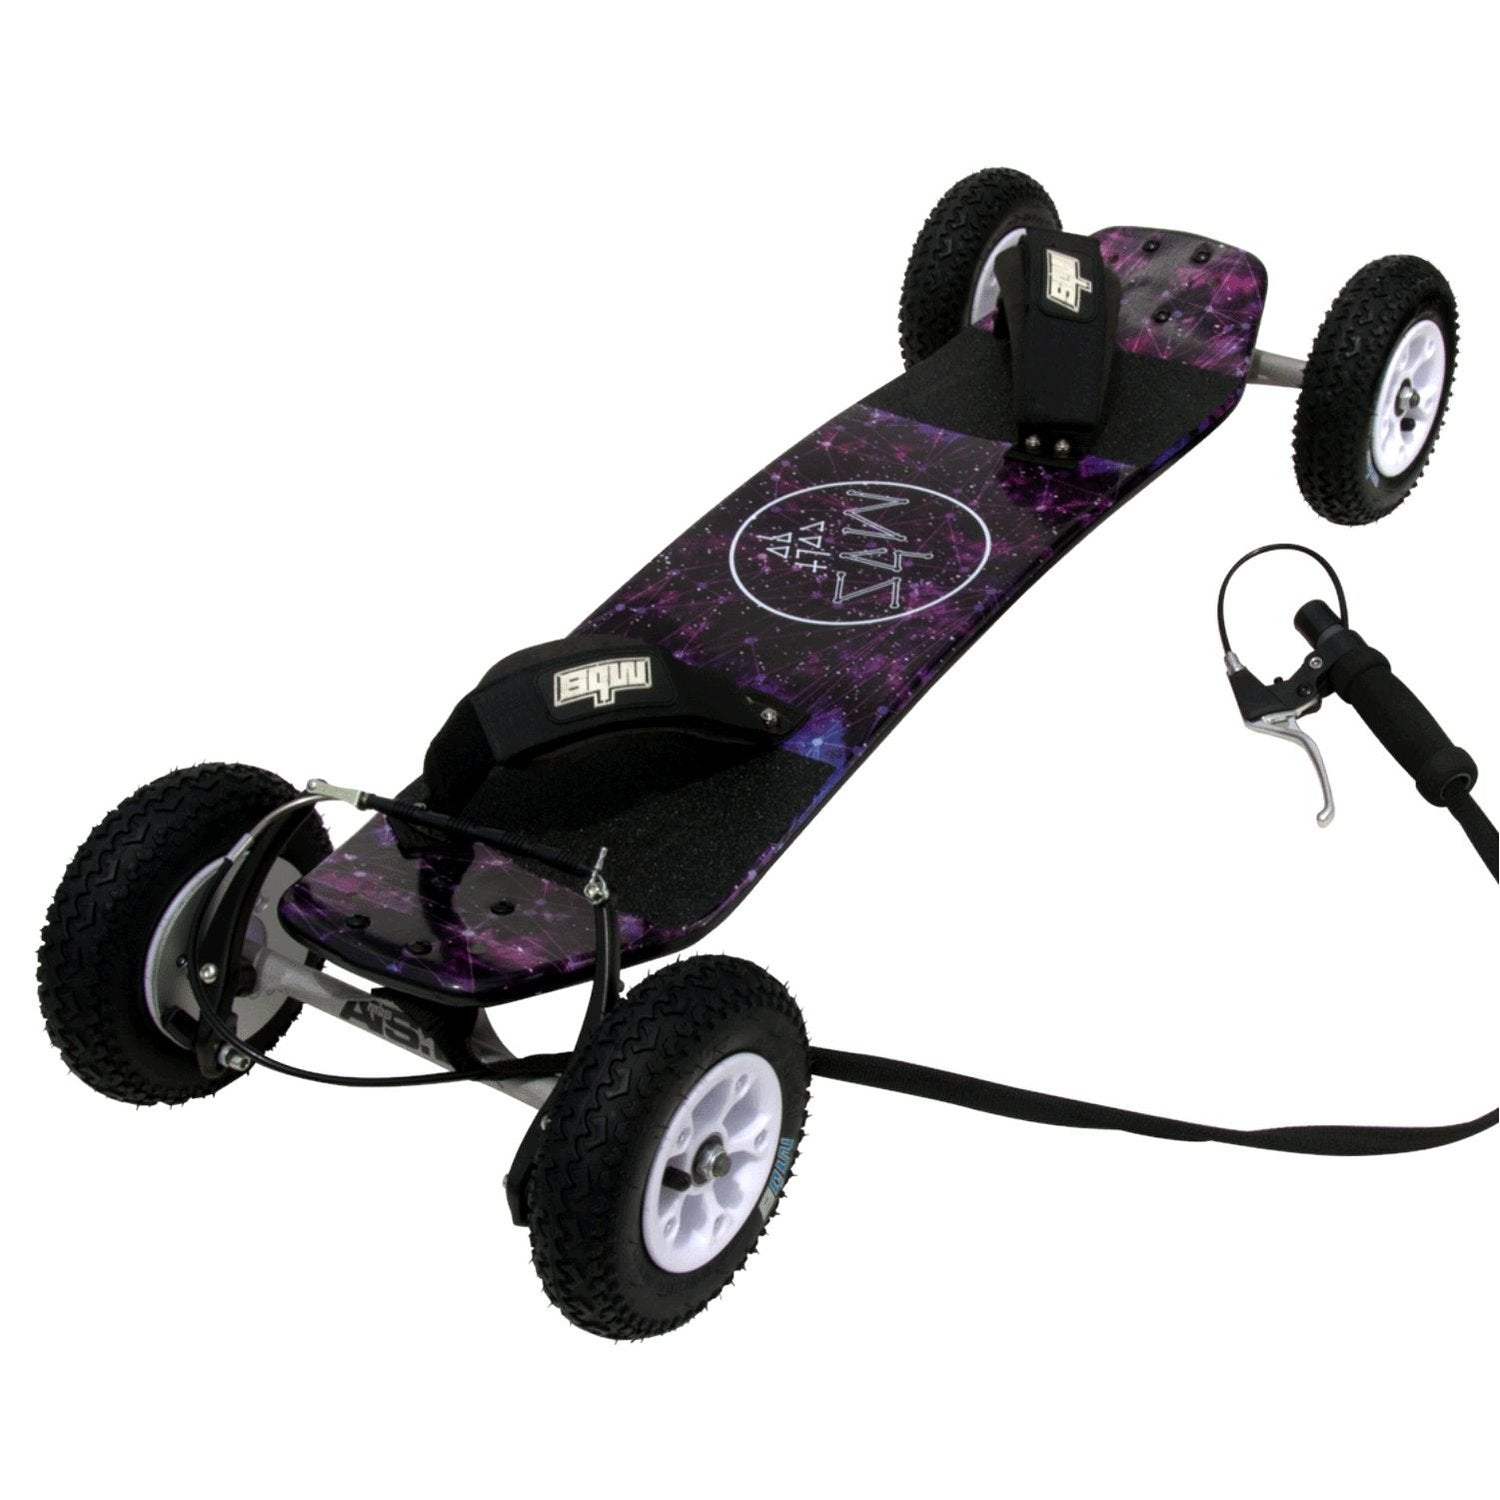 MBS Colt 90X Mountainboard - Constellation - Mountainboard Ridetique.com